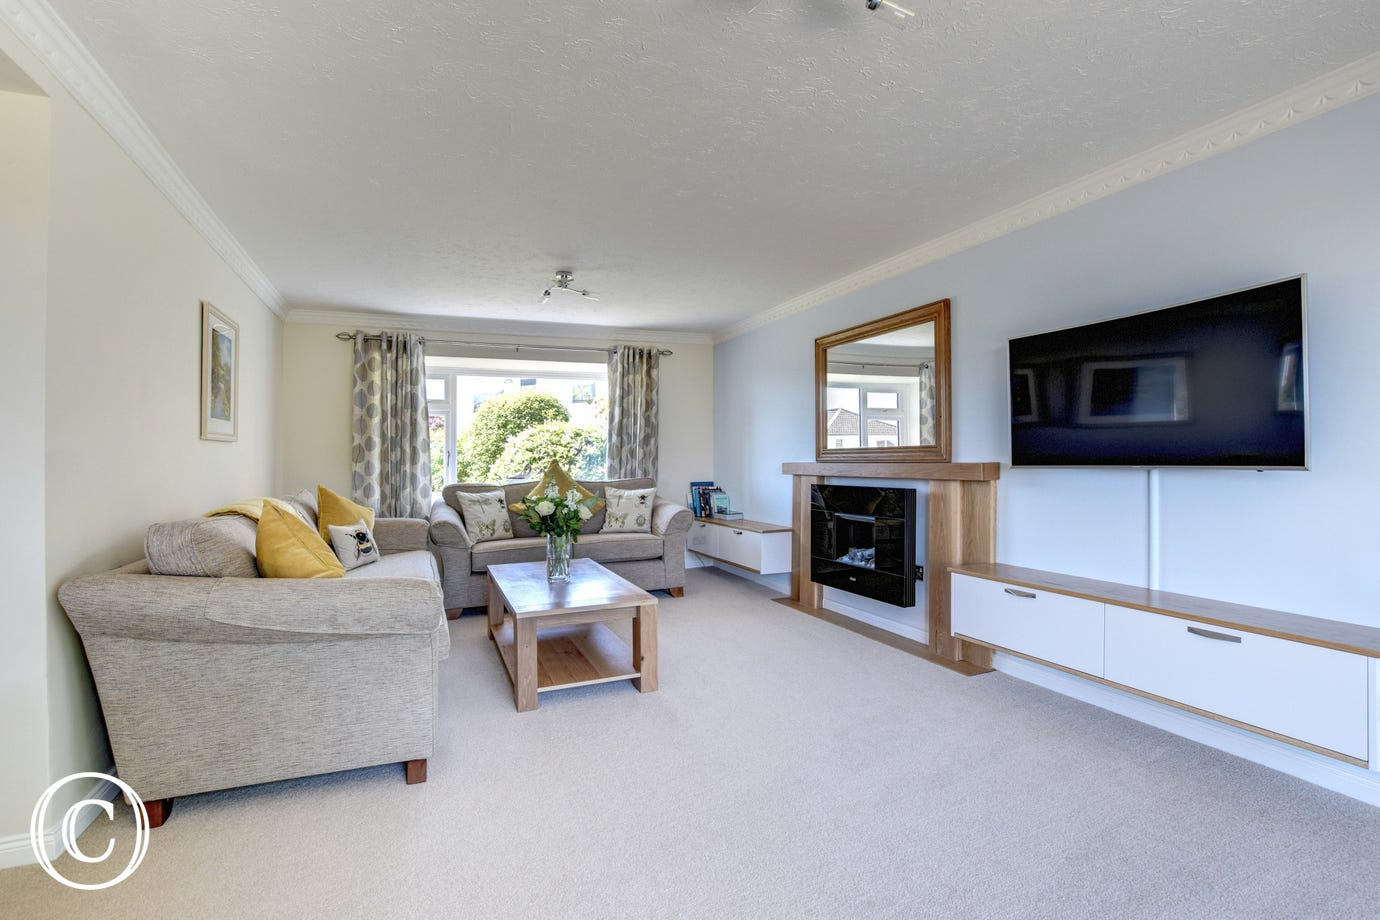 Summercourt House, Brixham - Living room - view 2